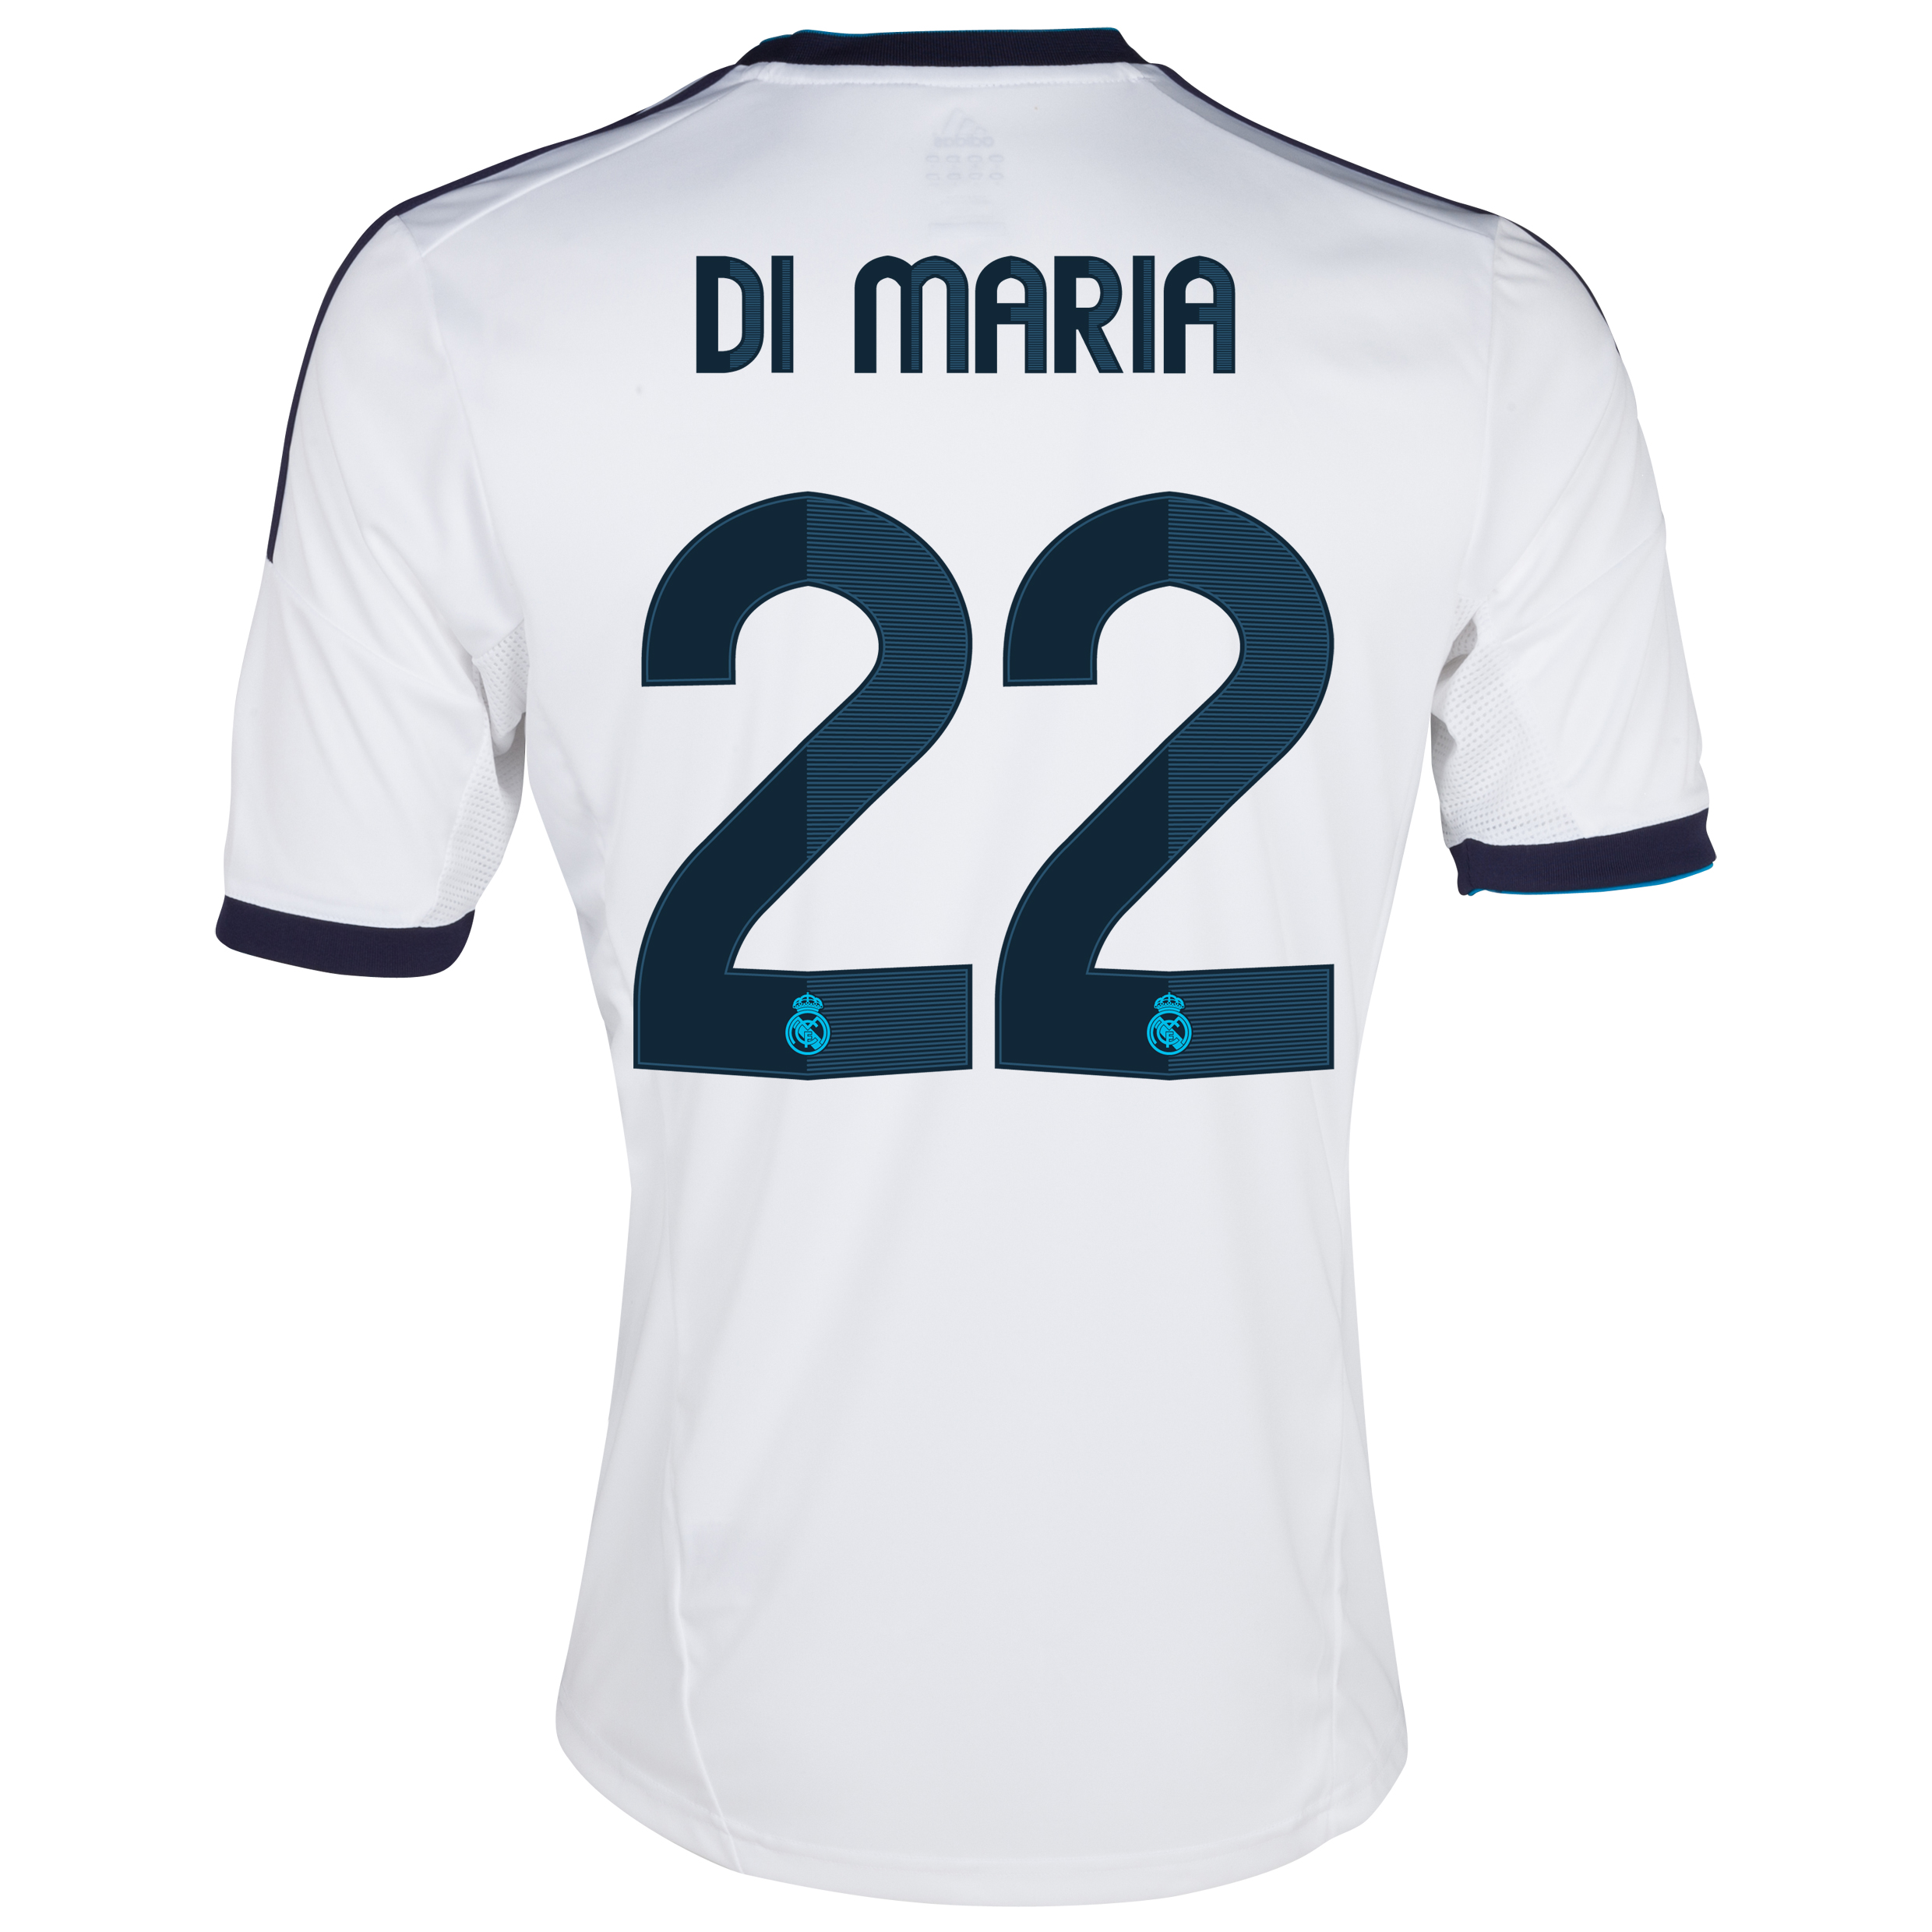 Real Madrid Home Shirt 2012/13 with Di Mara 22 printing